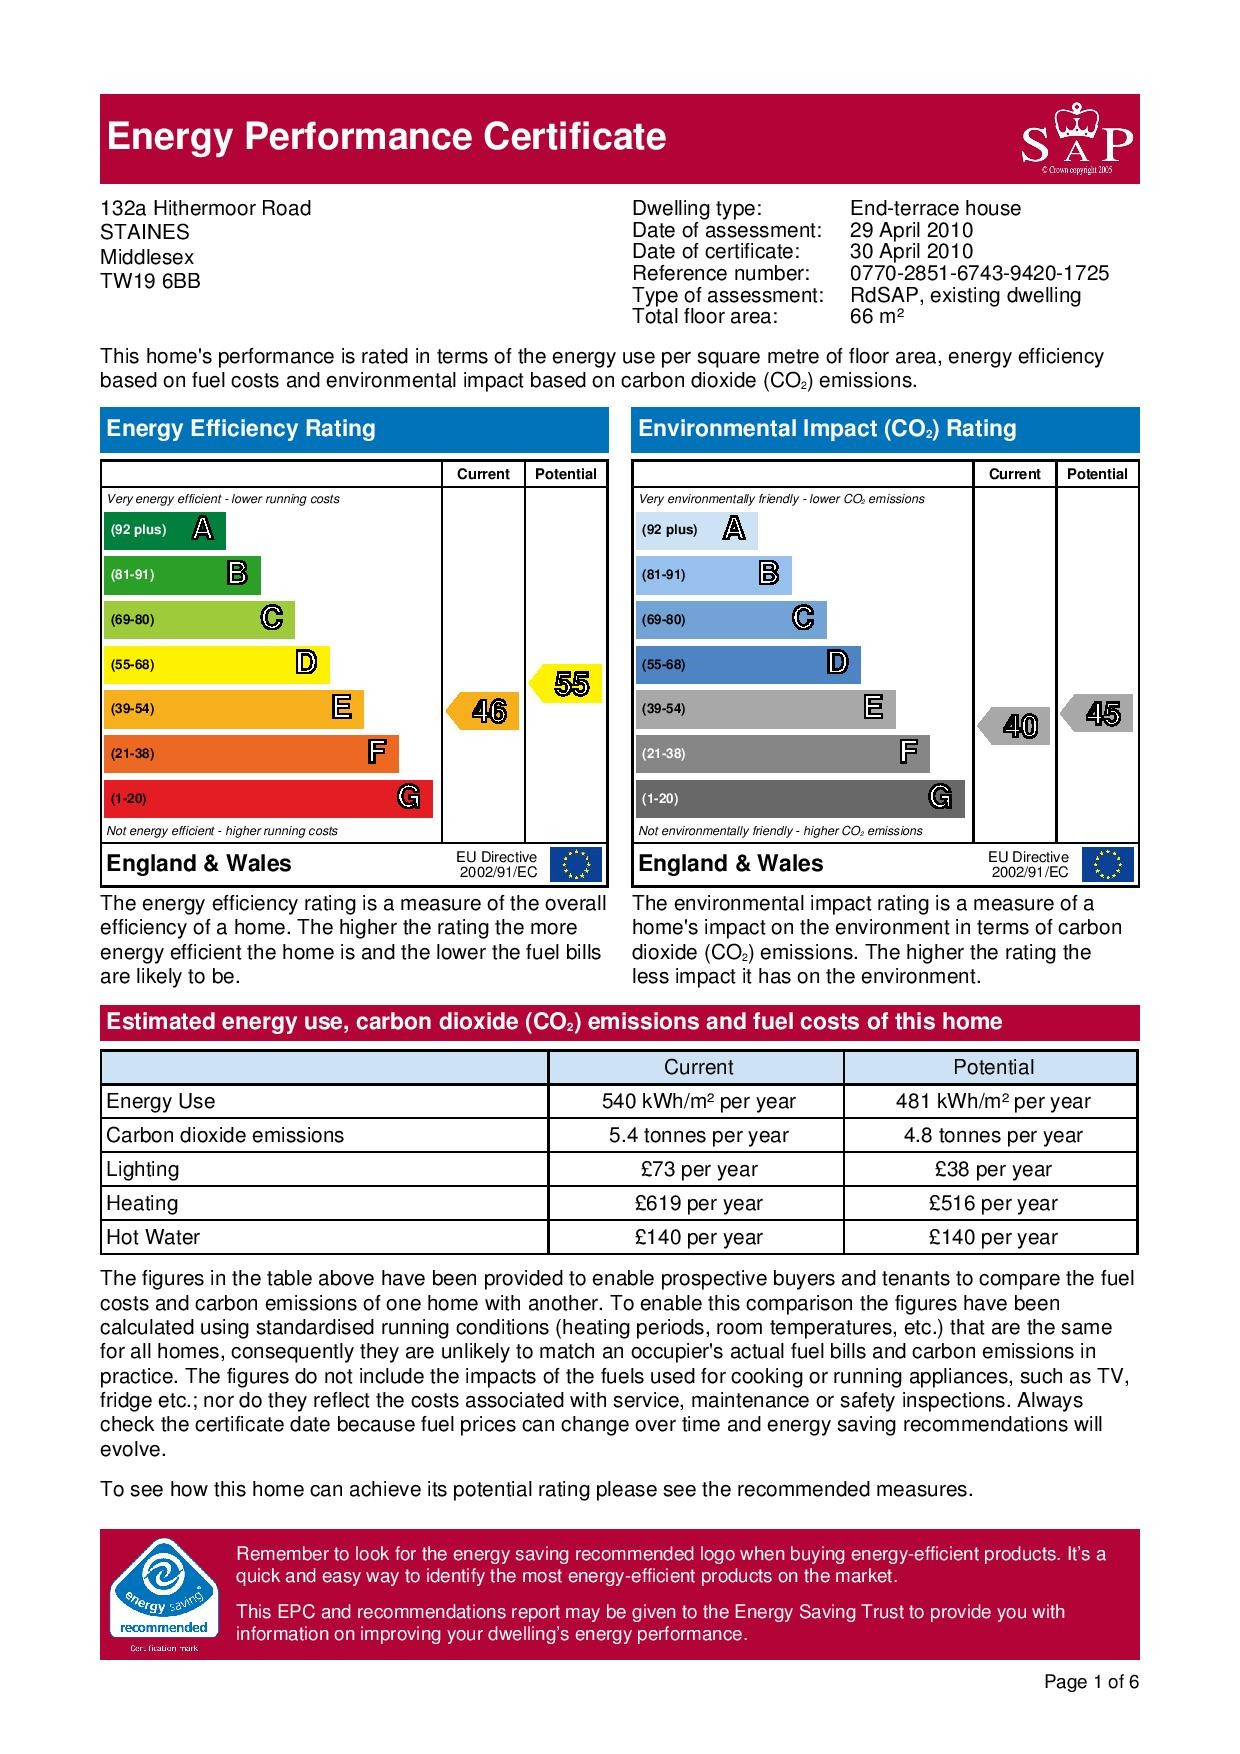 EPC Graph for 132a Hithermoor Road, Stanwell Moor, Middlesex TW19 6BB